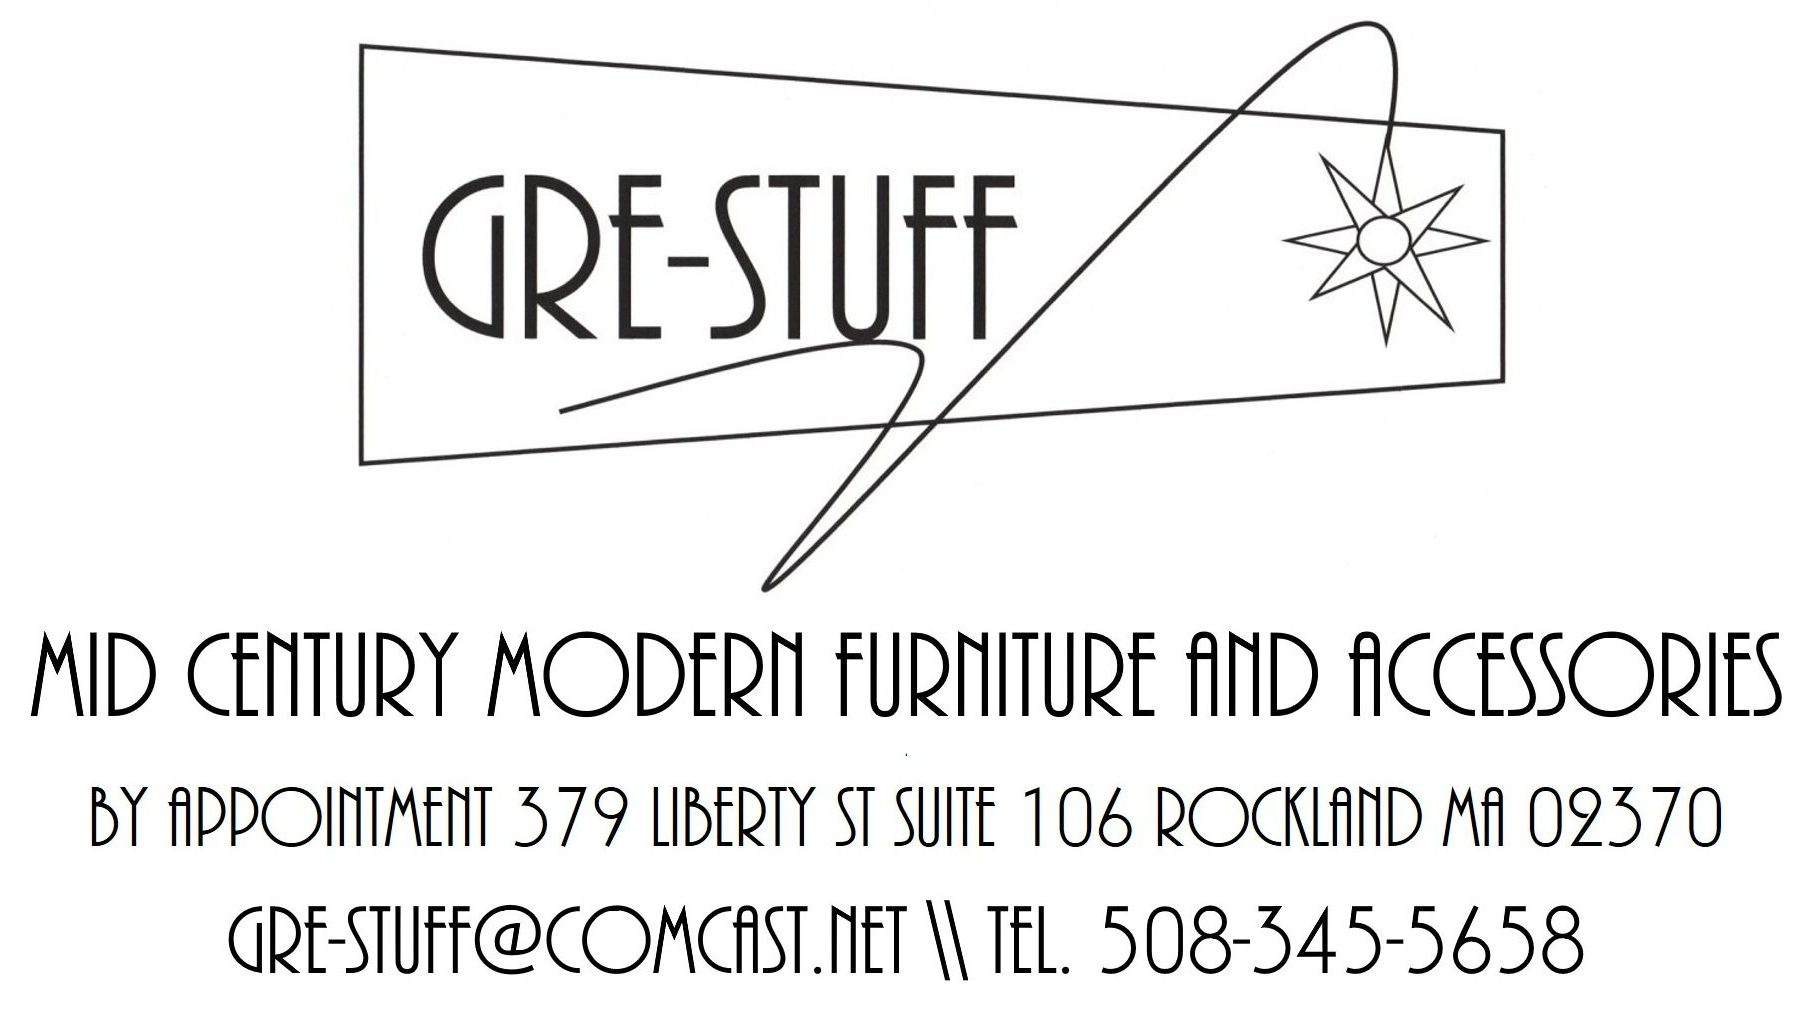 Specializing in Mid Century Modern furniture and accessories.